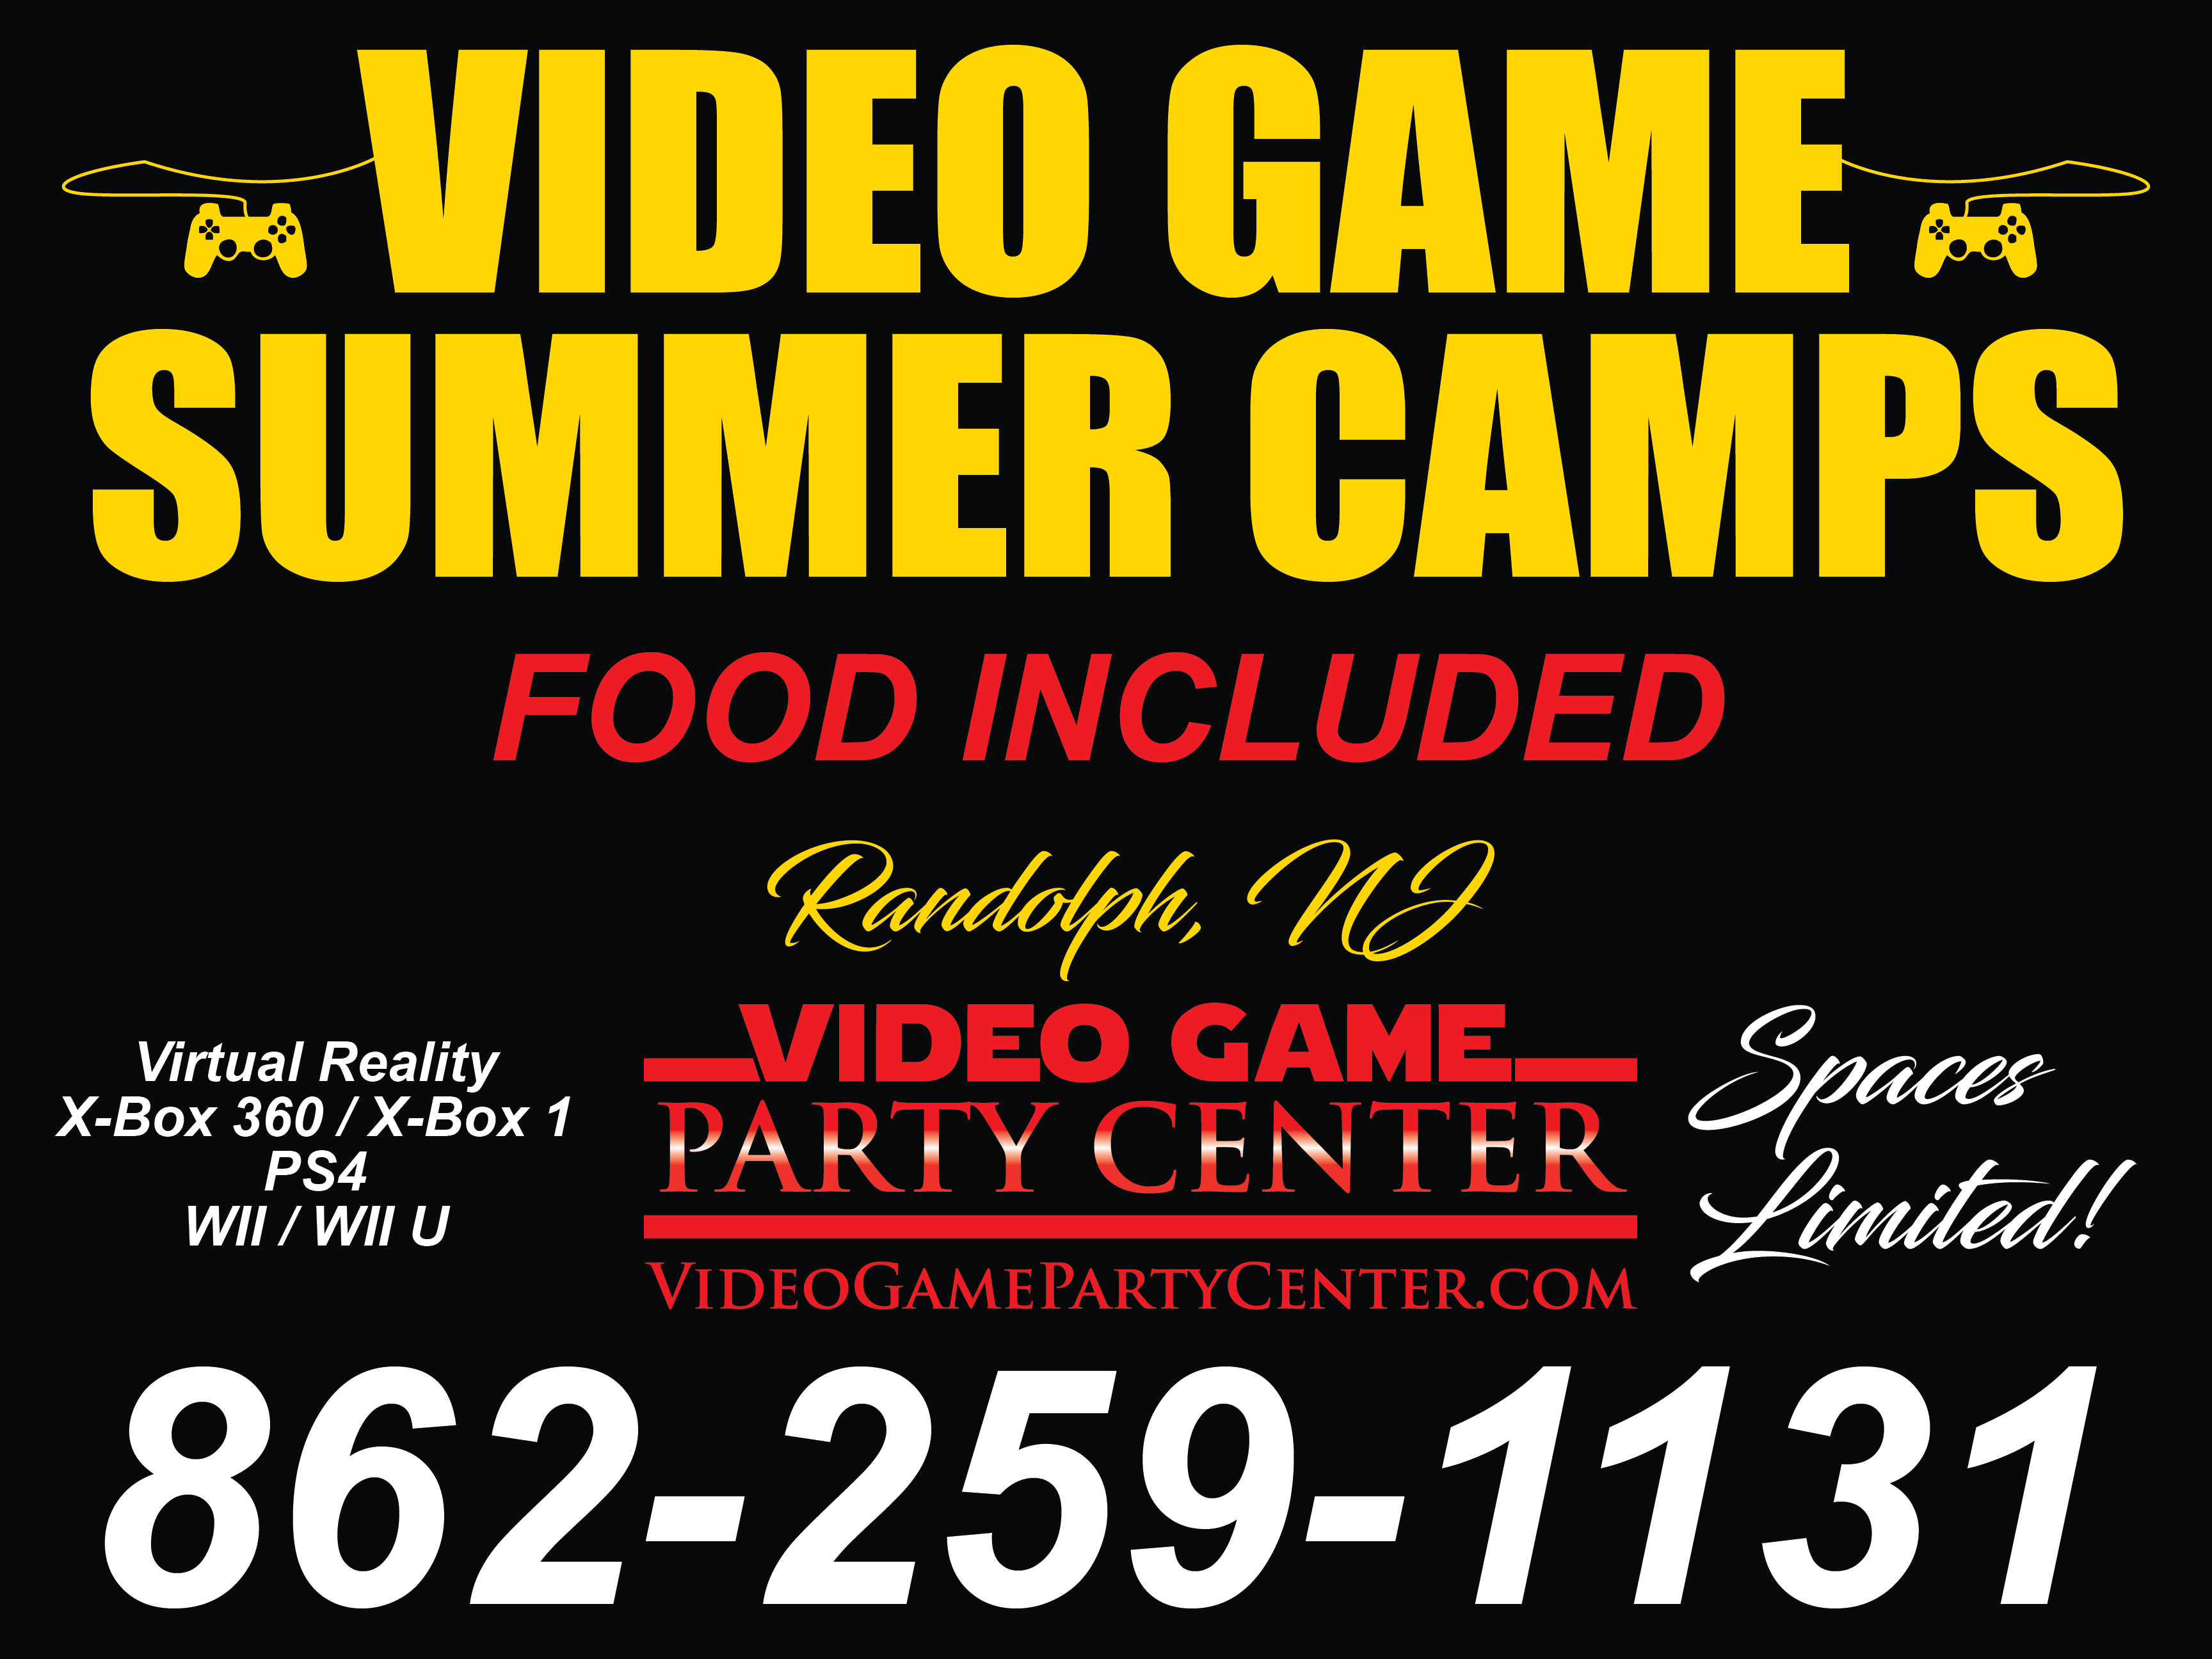 Video Game Summer Camp and Birthday Parties in Randolph, NJ